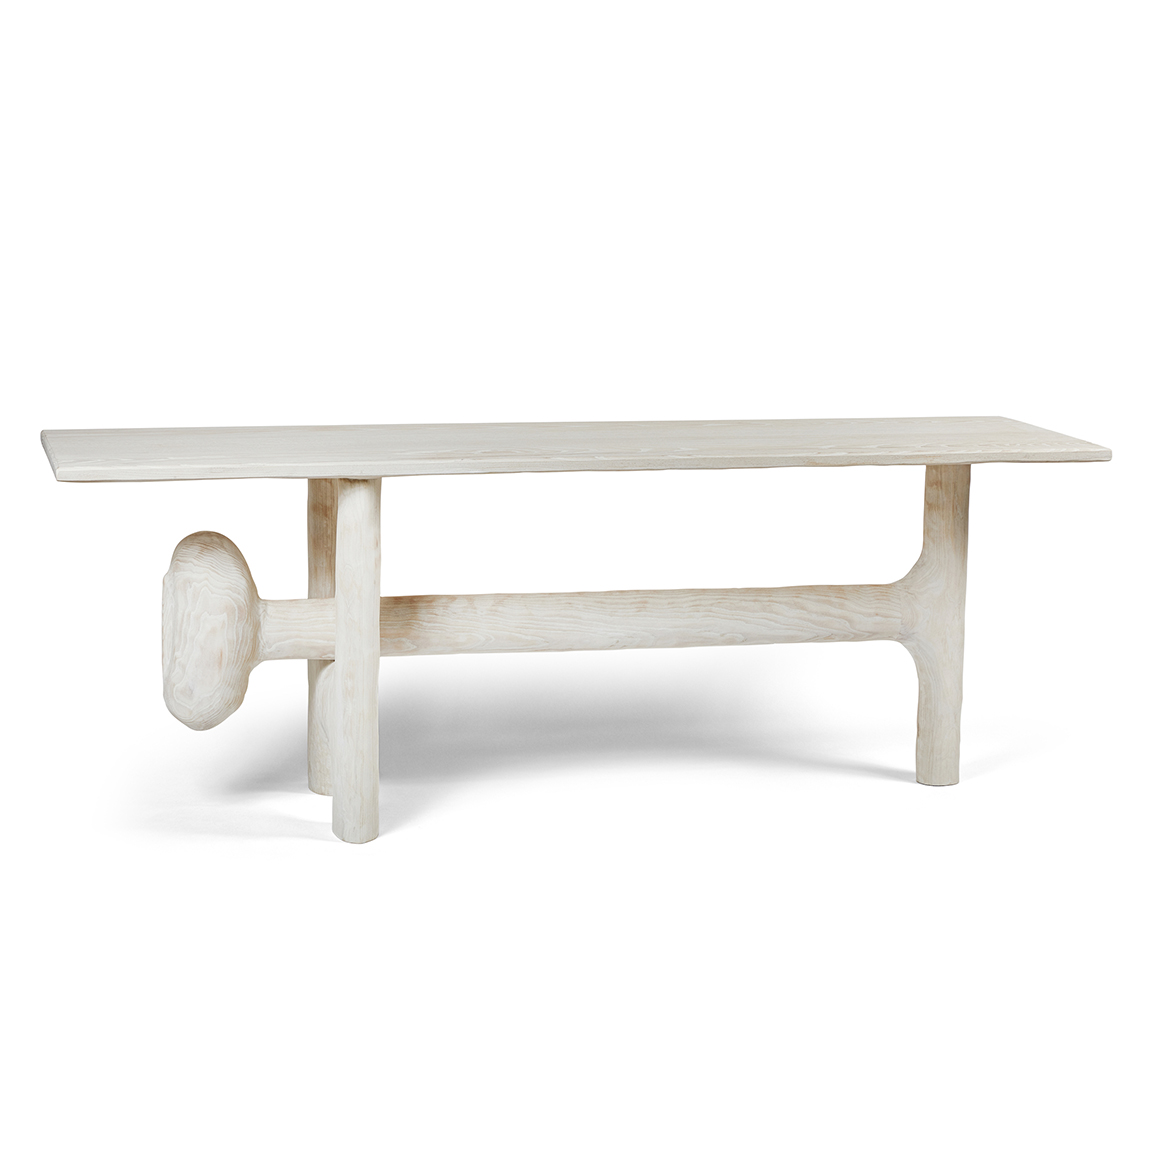 004 Sculptural Console Table by Casey McCafferty